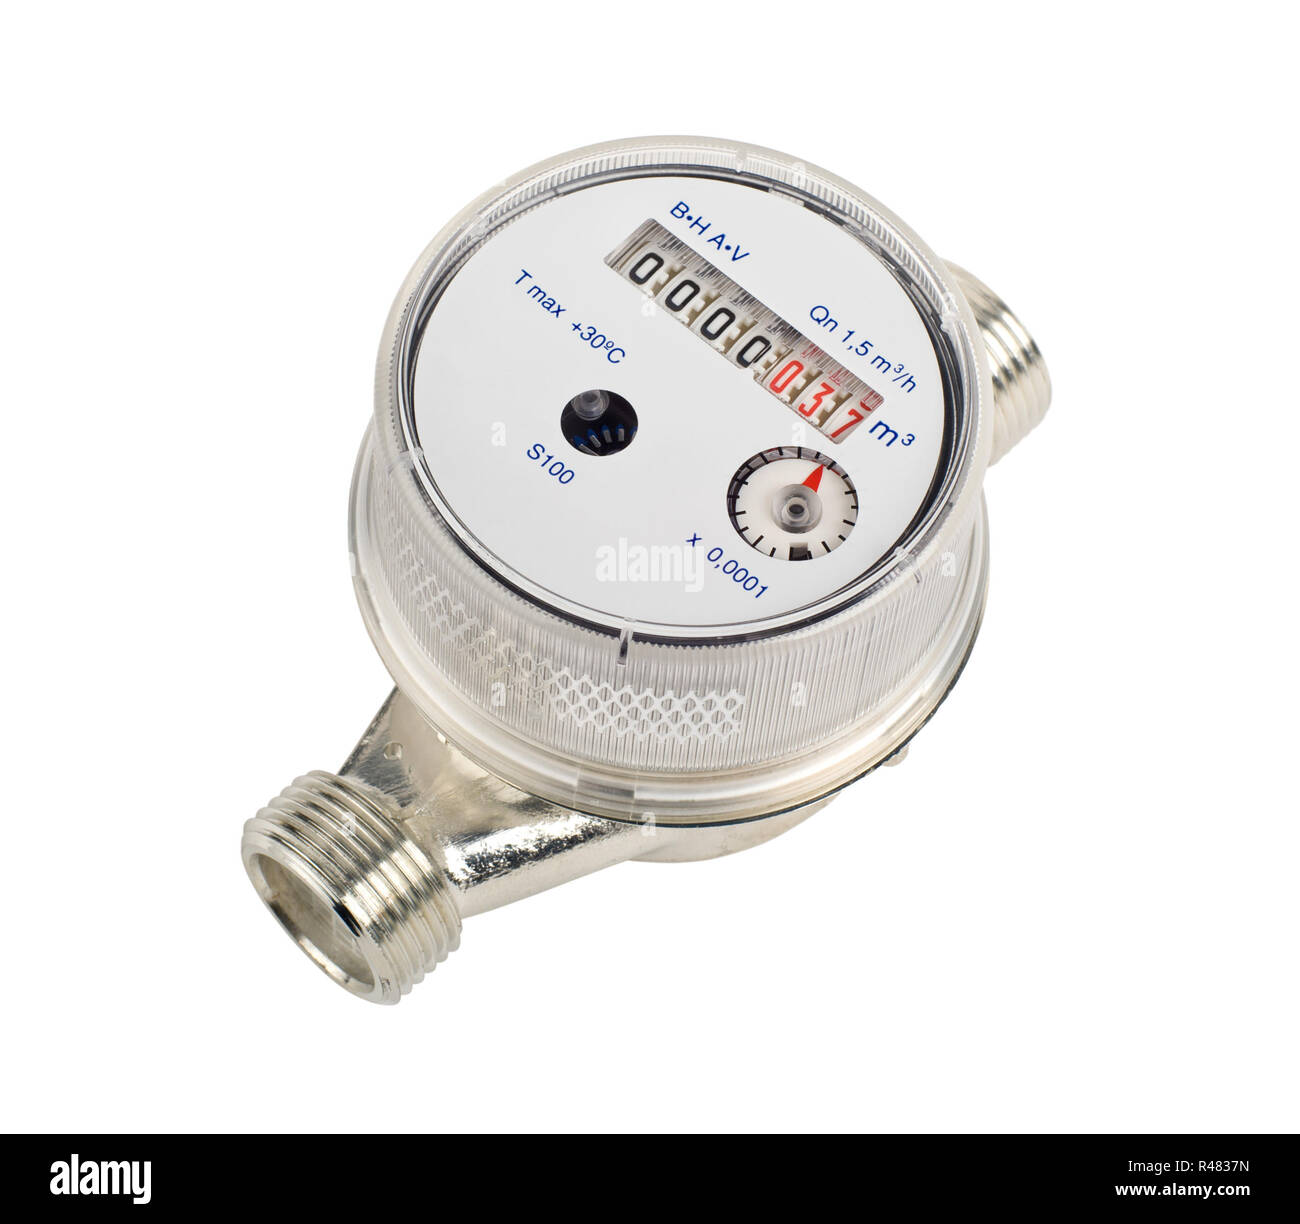 Water meter cutout - Stock Image